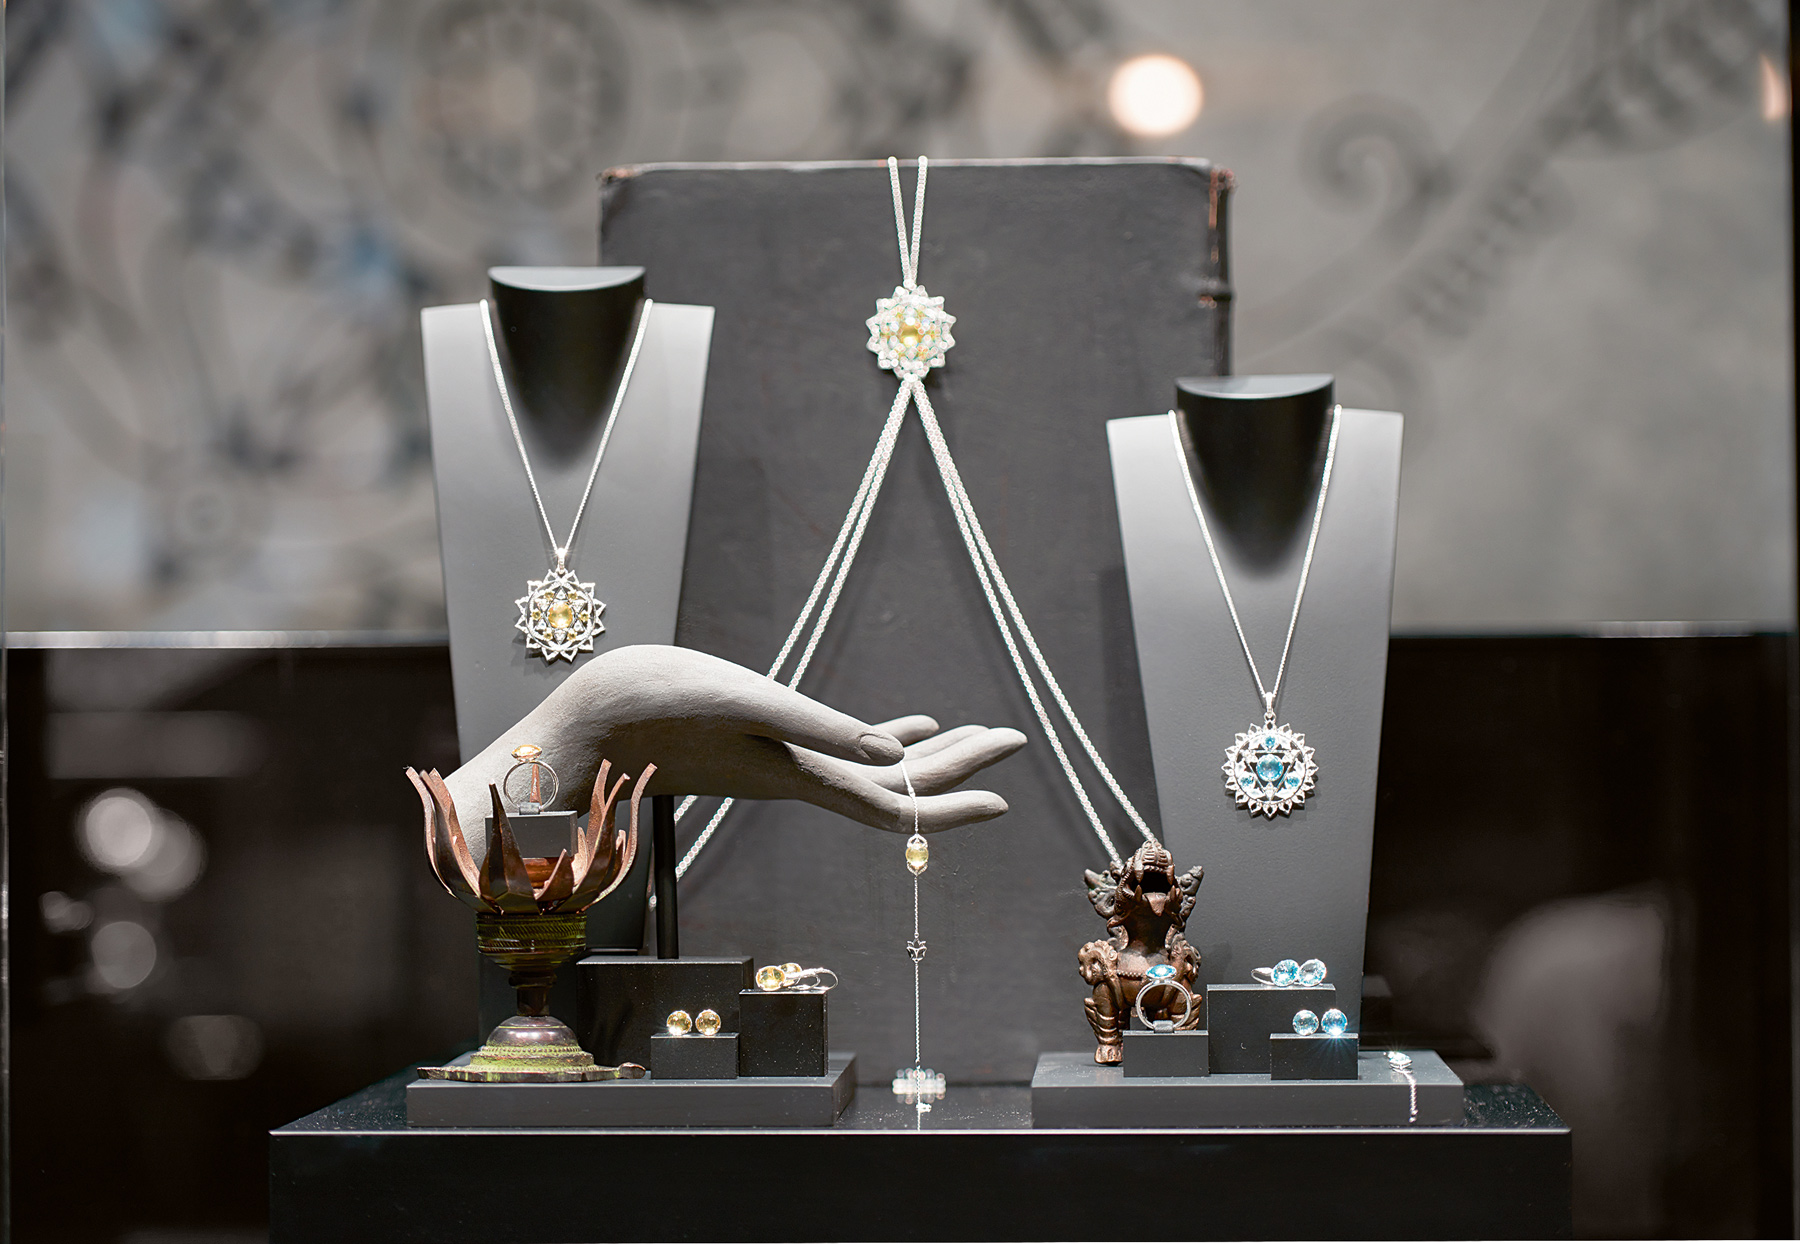 The stylish display really gives away the effort behind the work of these diamond and gemstones 18k gold and radiant quests jewelry pieces.